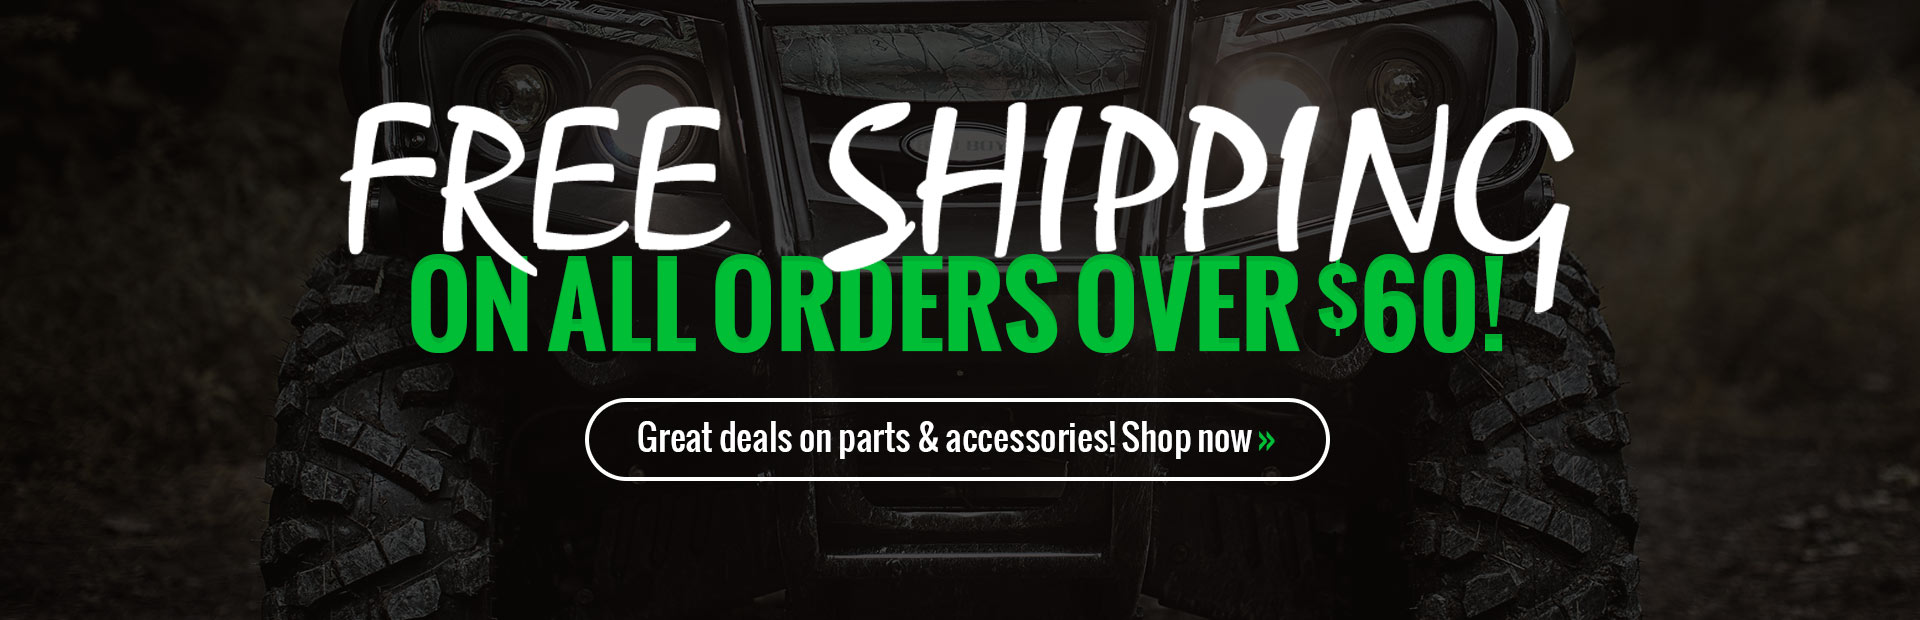 Get free shipping on all orders over $60!